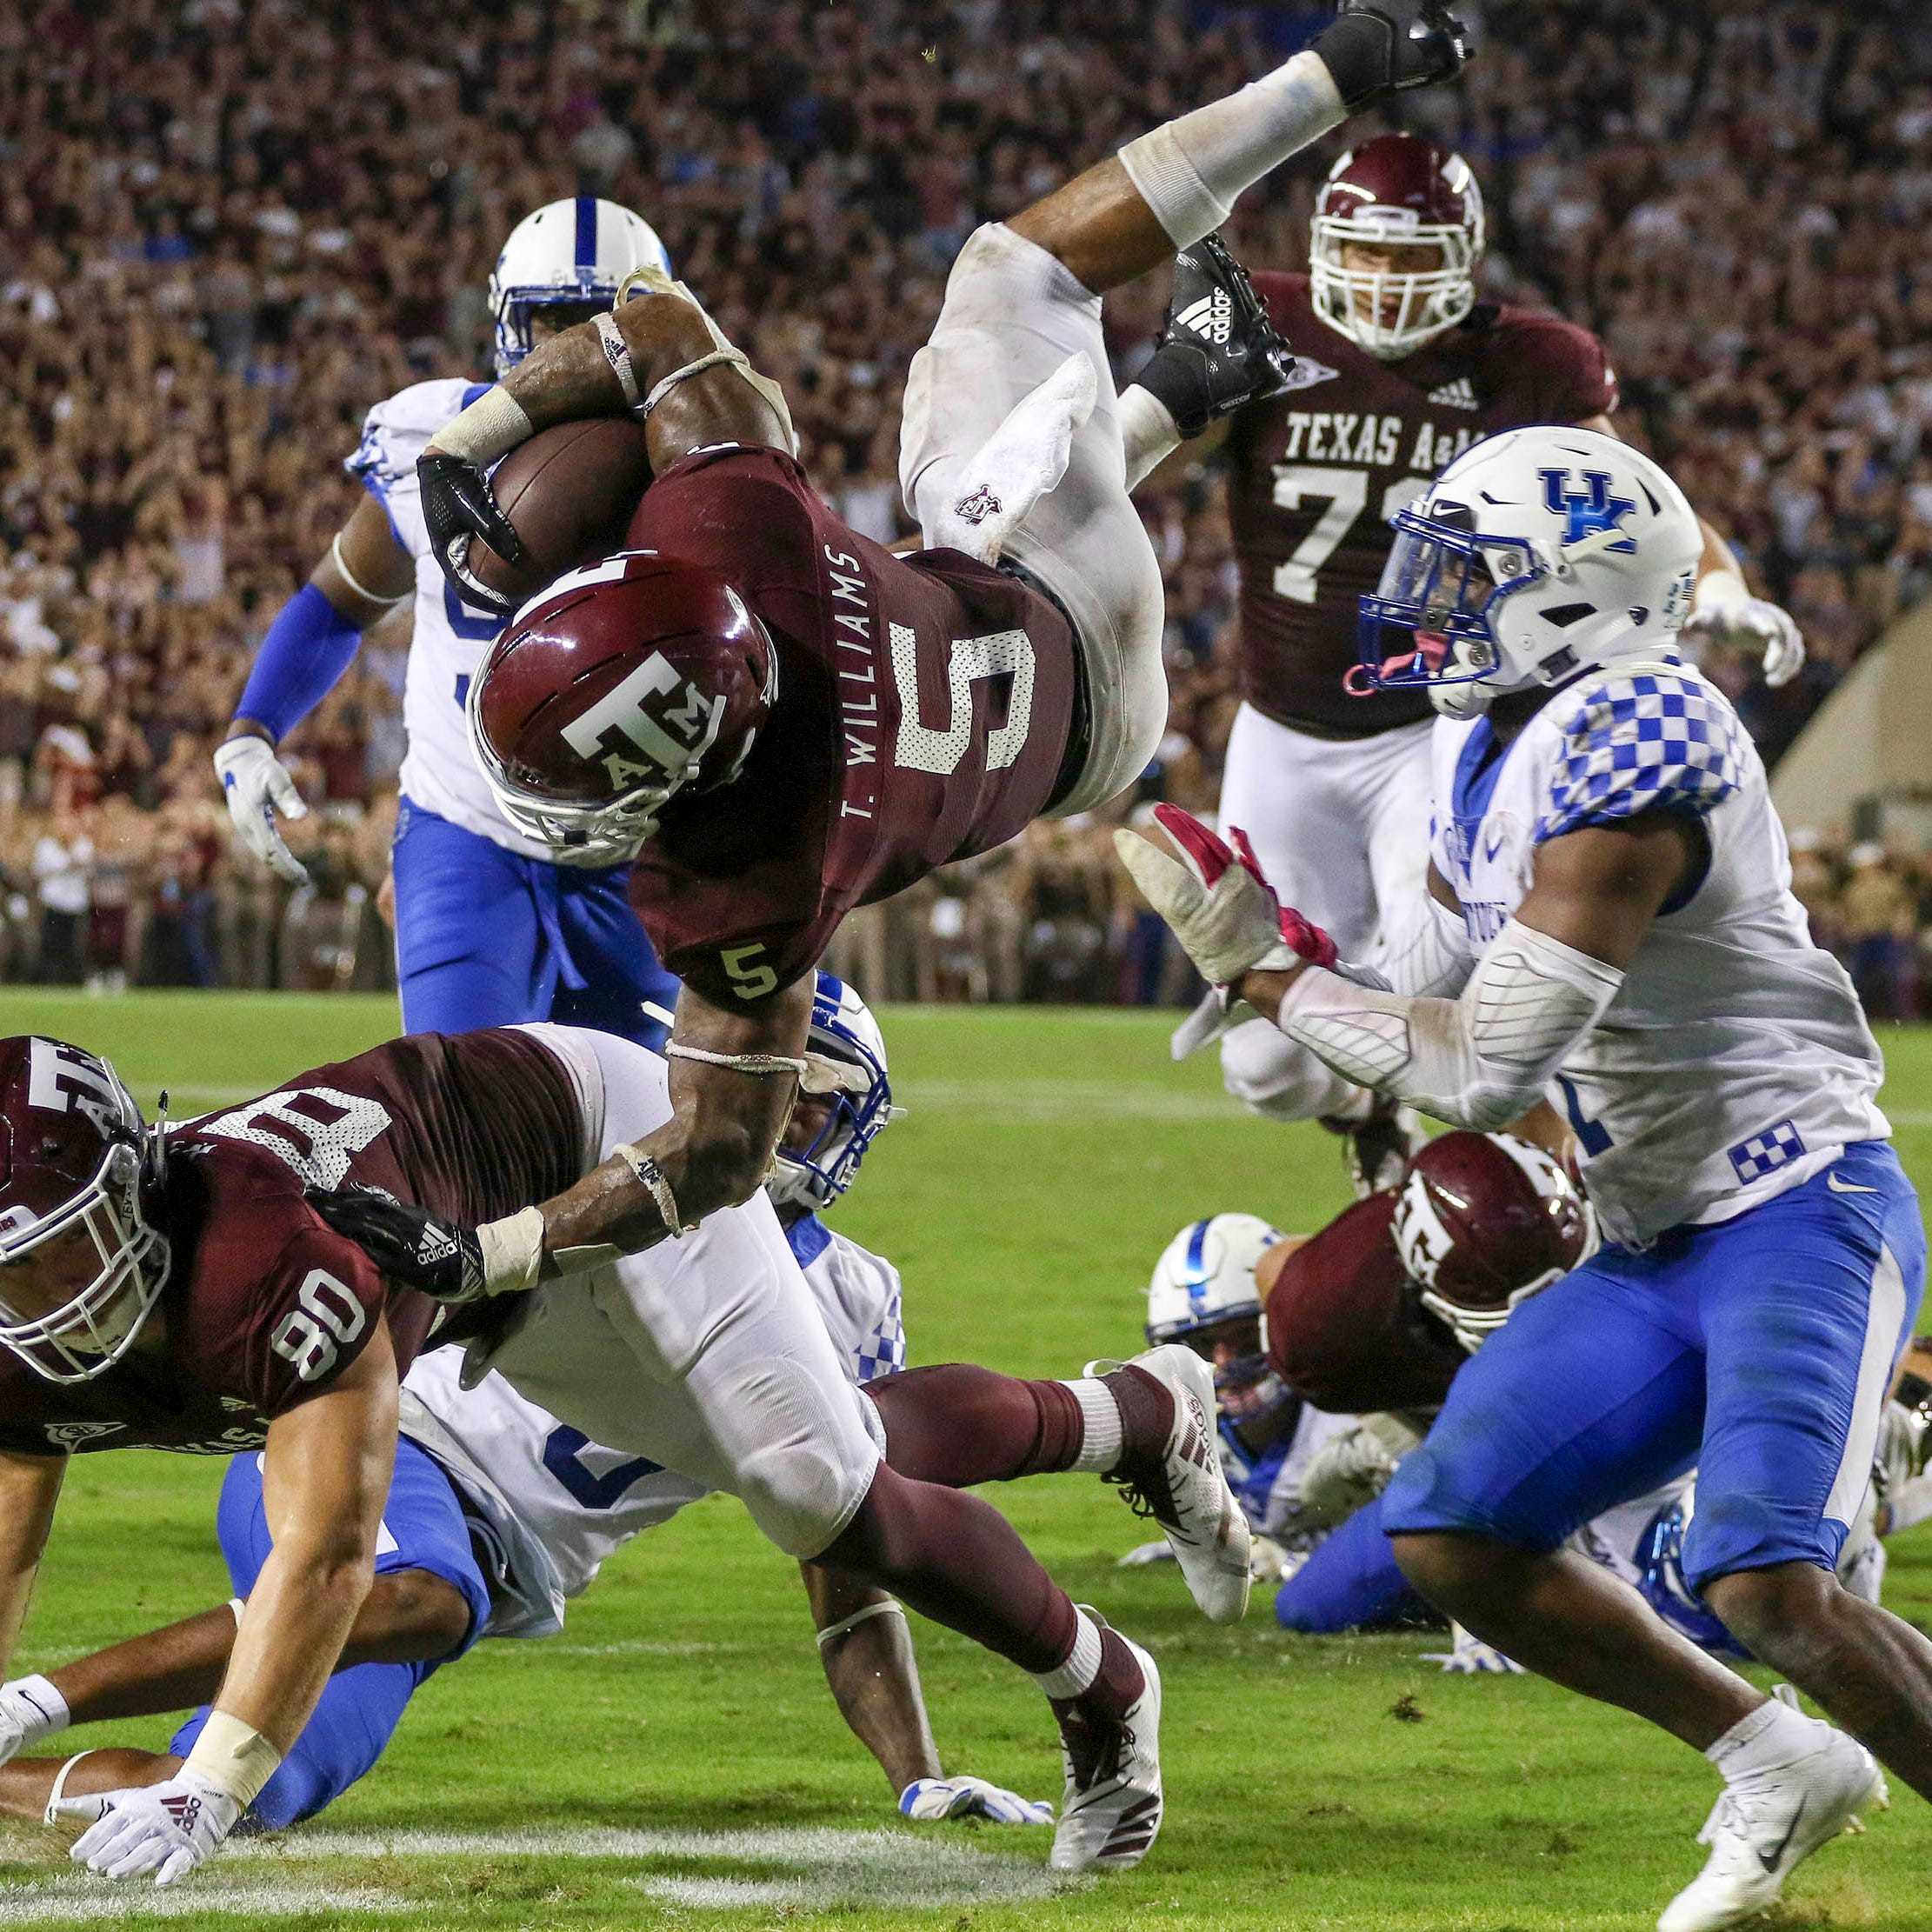 Texas A&M running back Trayveon Williams crosses the goal for a game-winning touchdown in overtime against Kentucky.